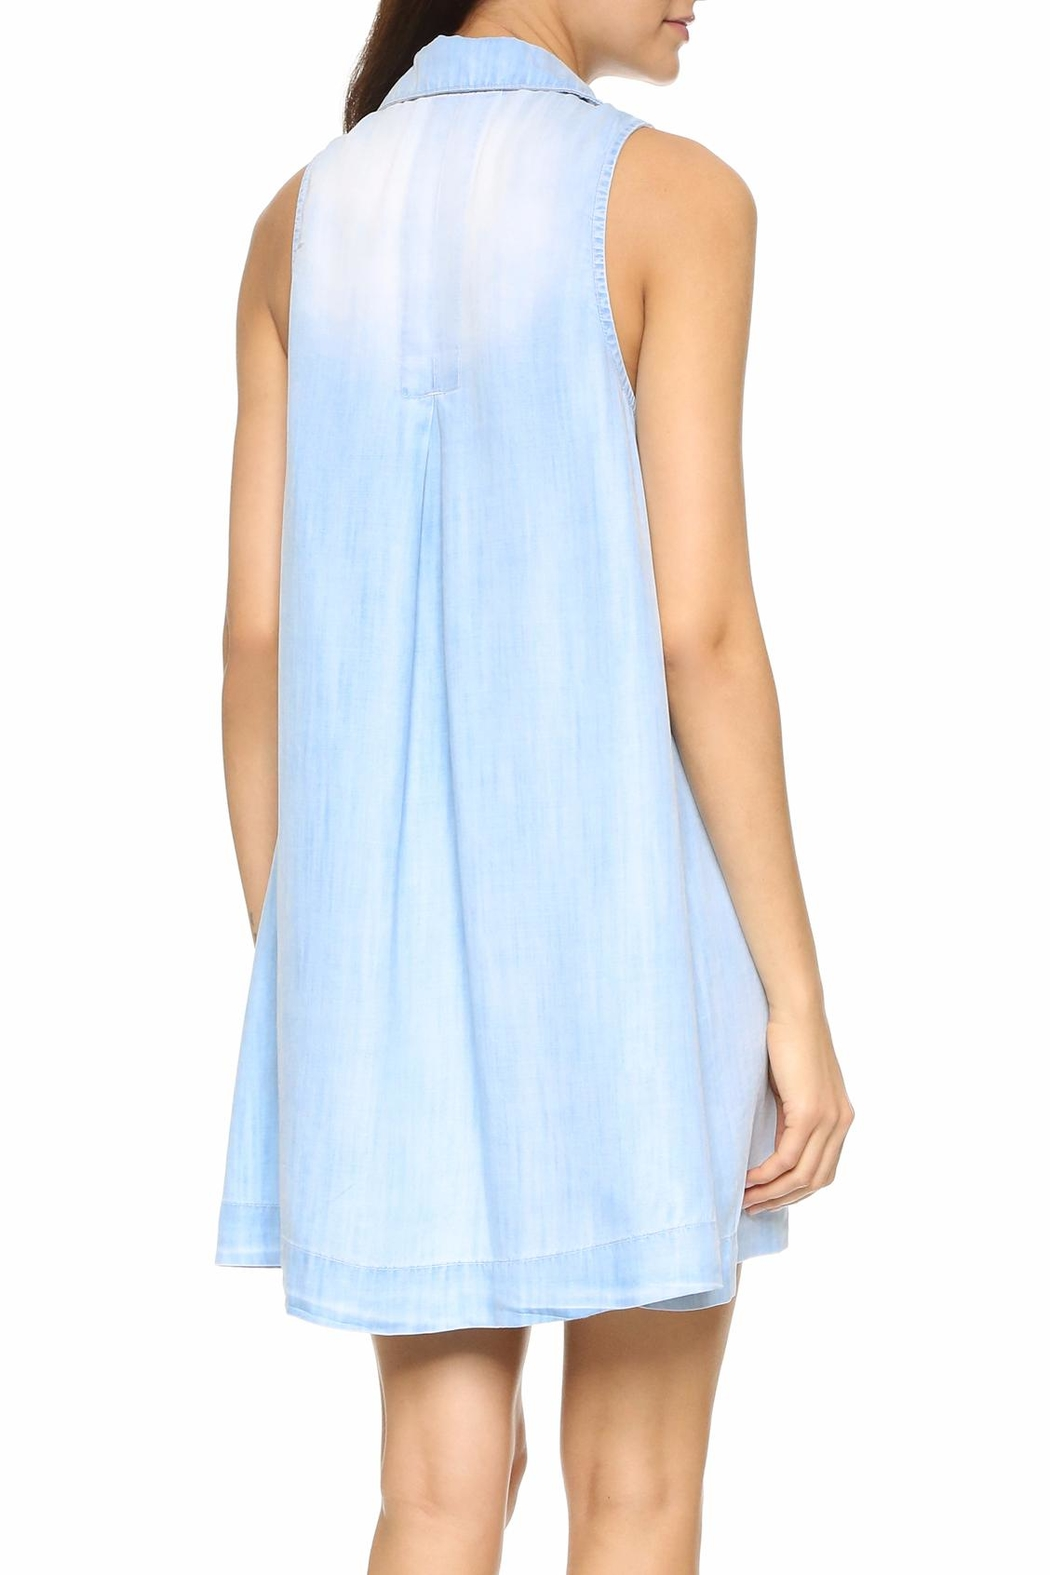 Bella Dahl Sky Wash Dress - Front Full Image